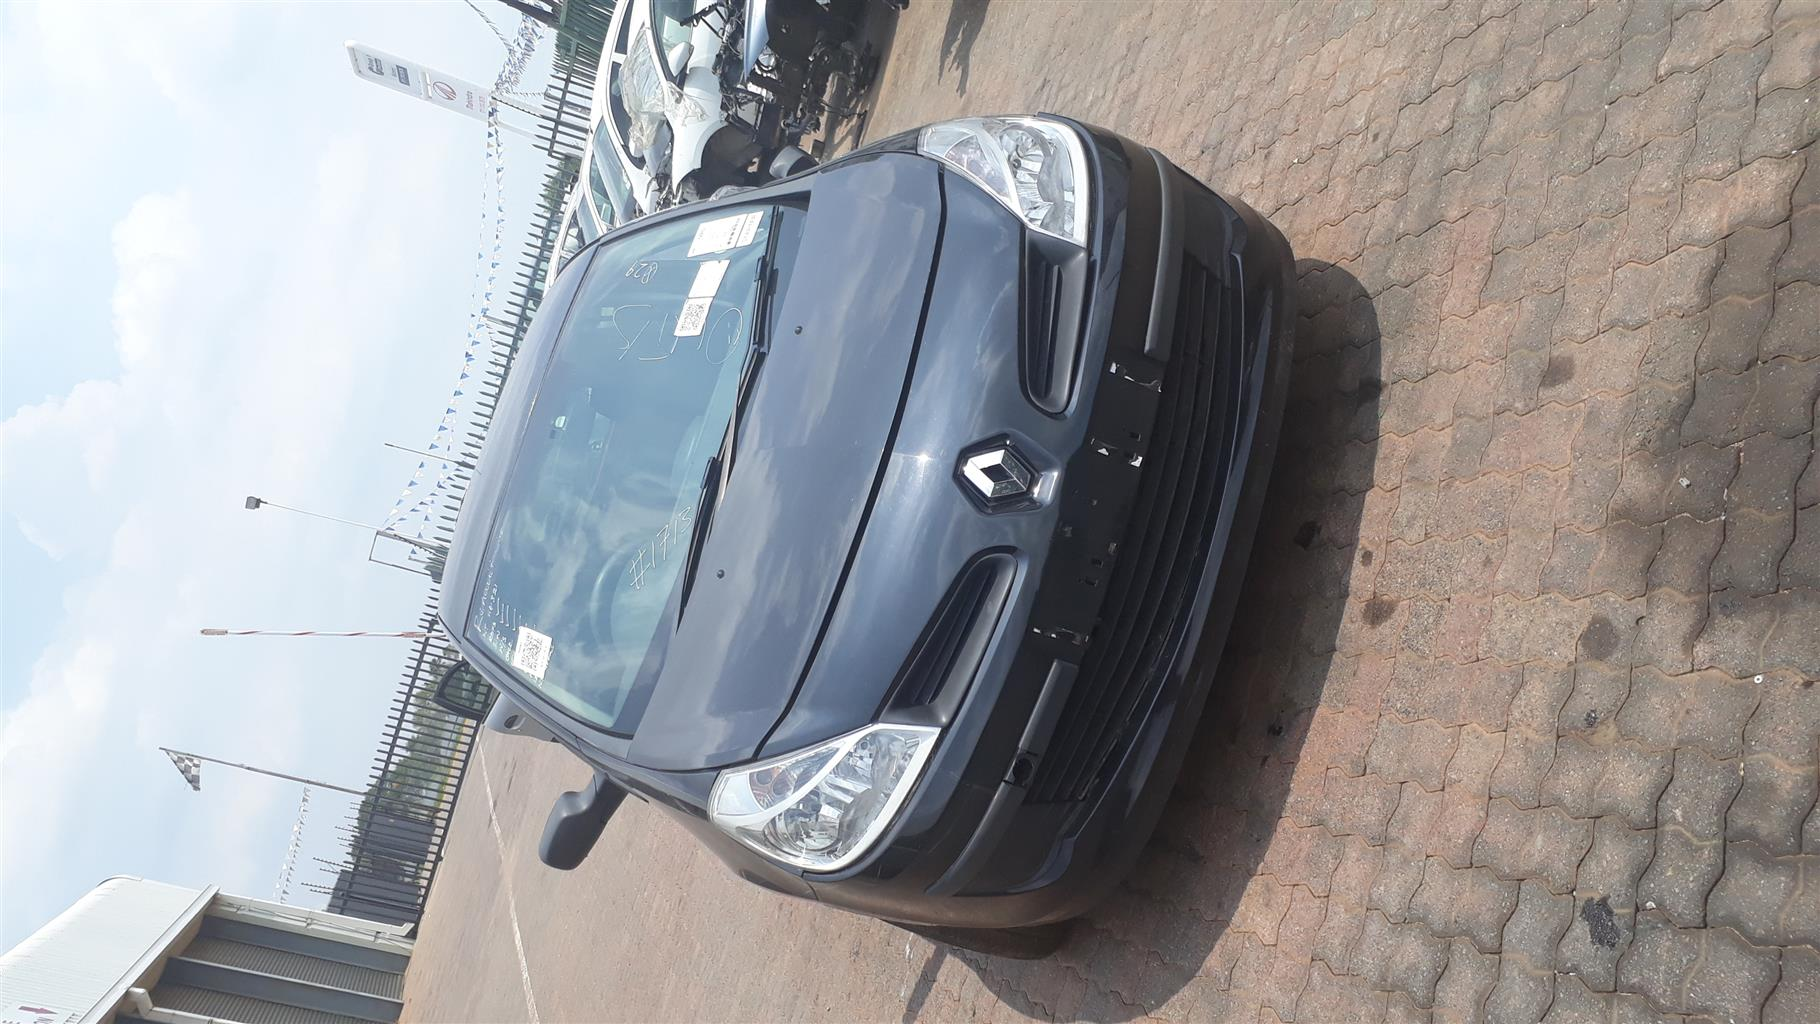 Renault Clio III Spare Parts For Sale